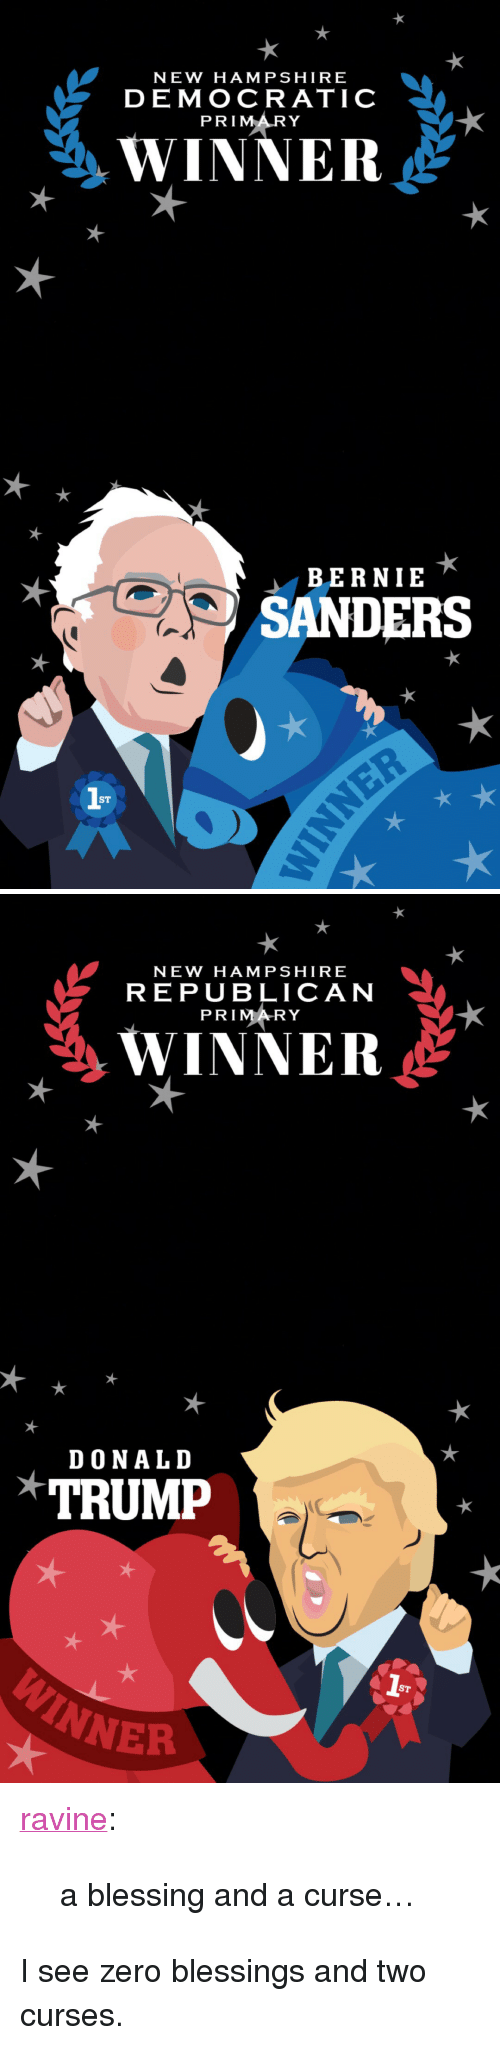 "Democratic primary: NEW HAMPSHIRE  DEMOCRATIC  PRIMARY  WINNER  BERNIE  SANDERS  ST   NEW HAMPSHIRE  REPU BLICAN  PRIM RY  WINNER  DONALID  TRUMP  ST  NER <p><a href=""http://ravine.tumblr.com/post/139024136510/a-blessing-and-a-curse"" class=""tumblr_blog"">ravine</a>:</p>  <blockquote><p>a blessing and a curse…</p></blockquote>  <p>I see zero blessings and two curses.</p>"